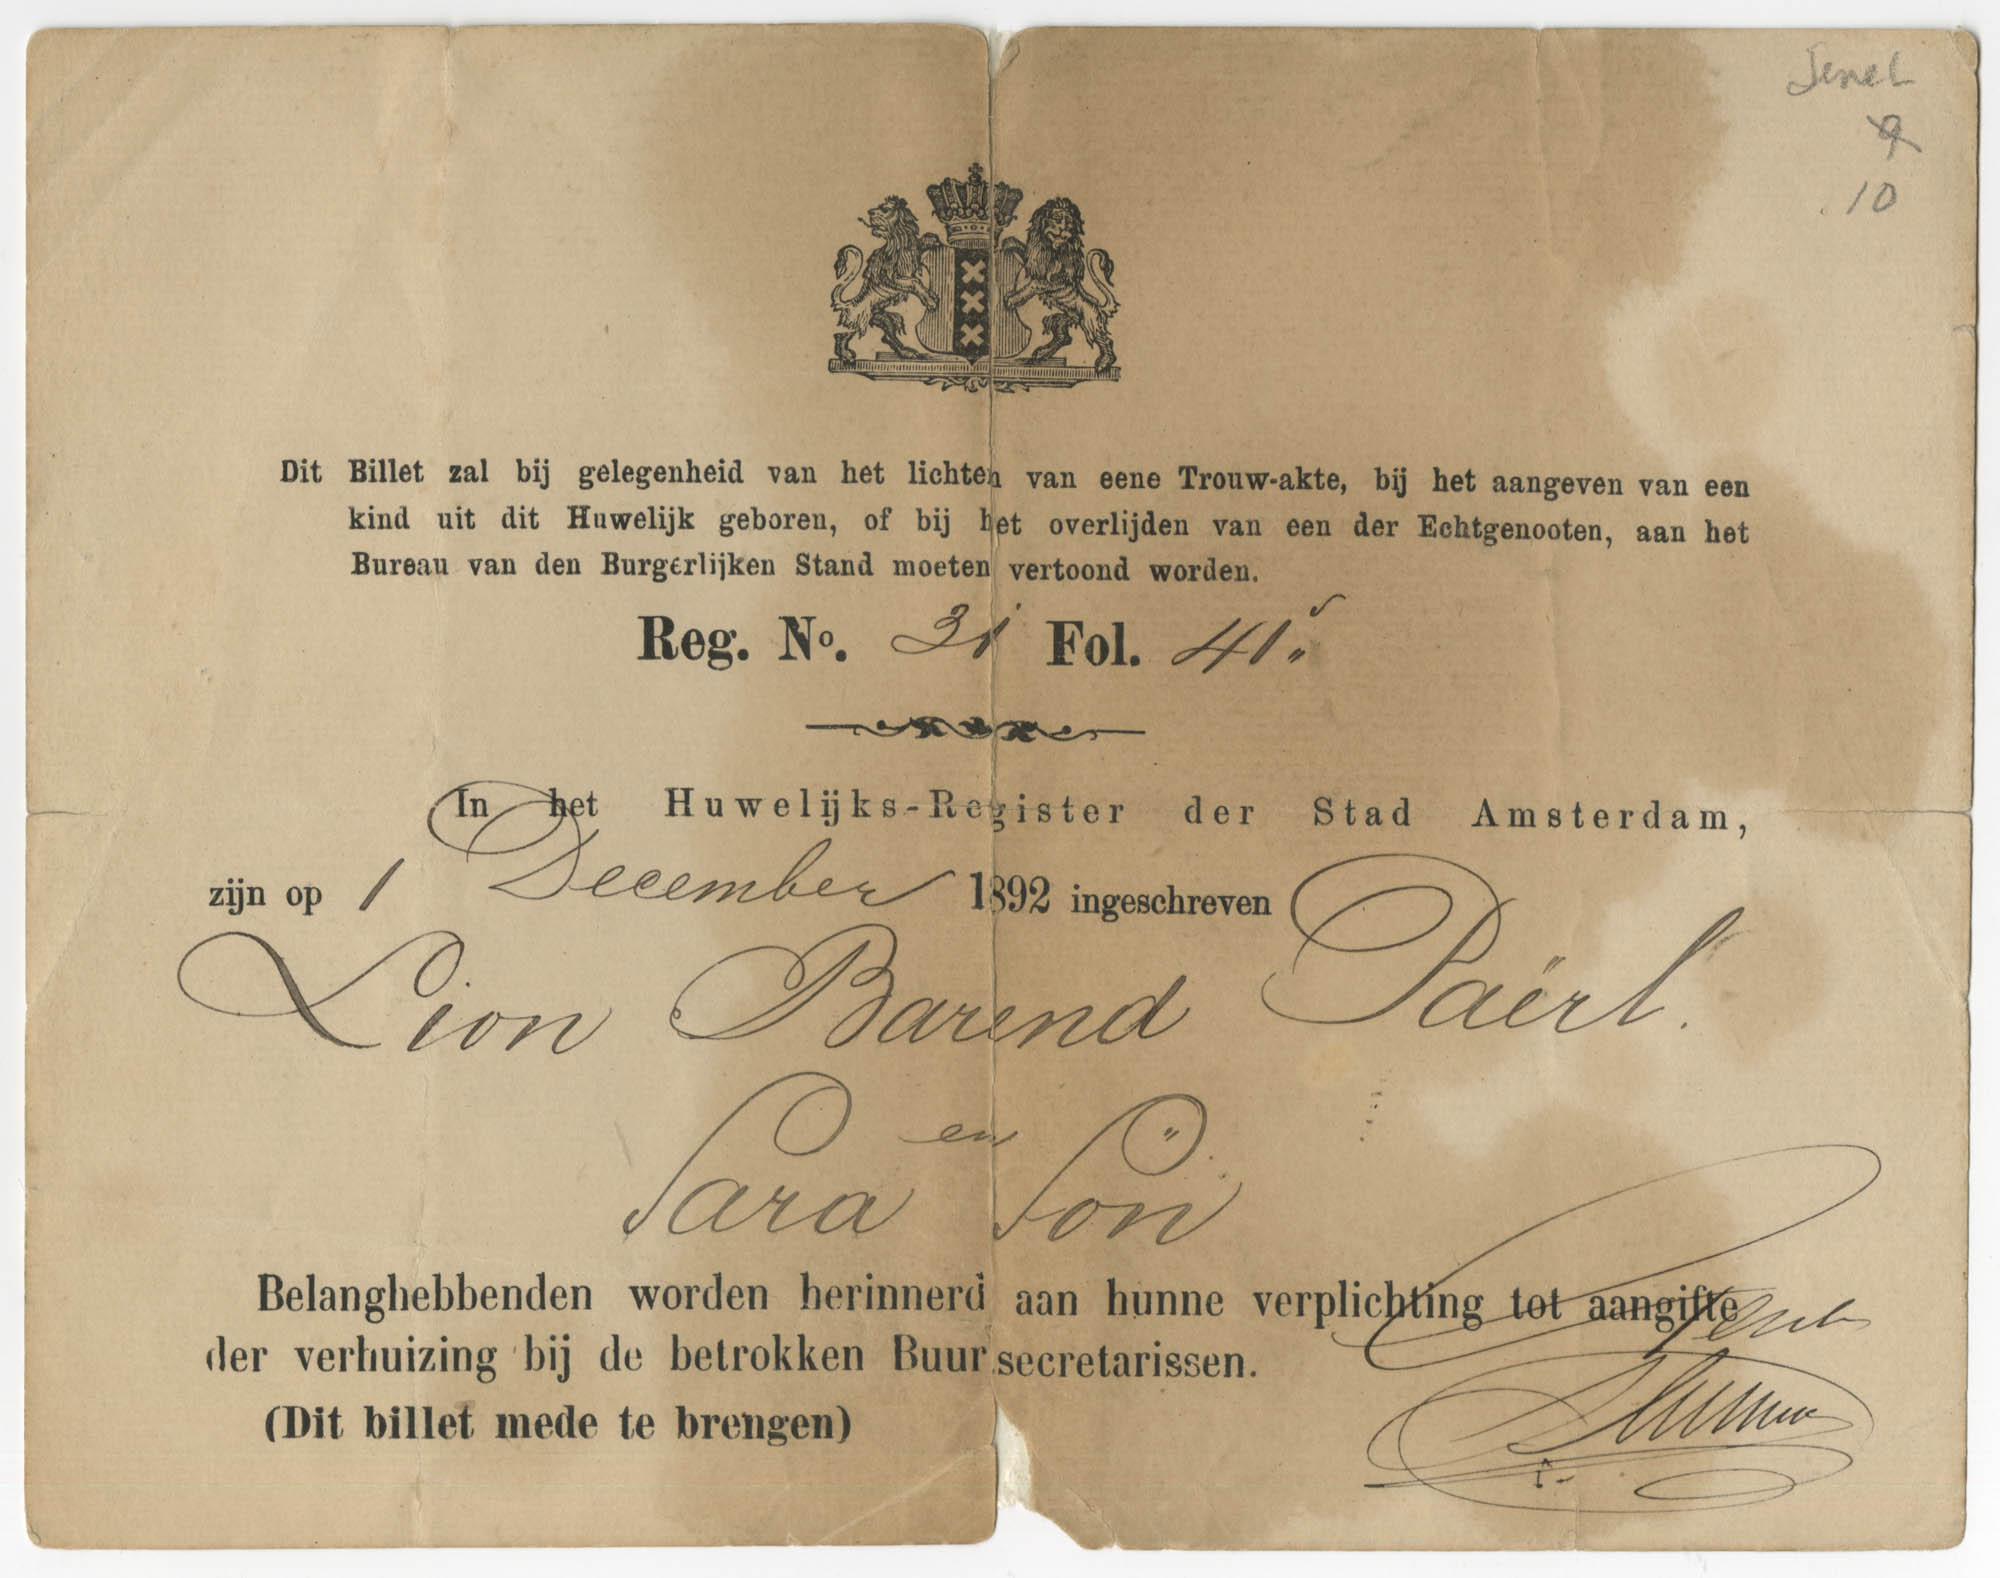 Lion Barend Paerl marriage certificate, 1892